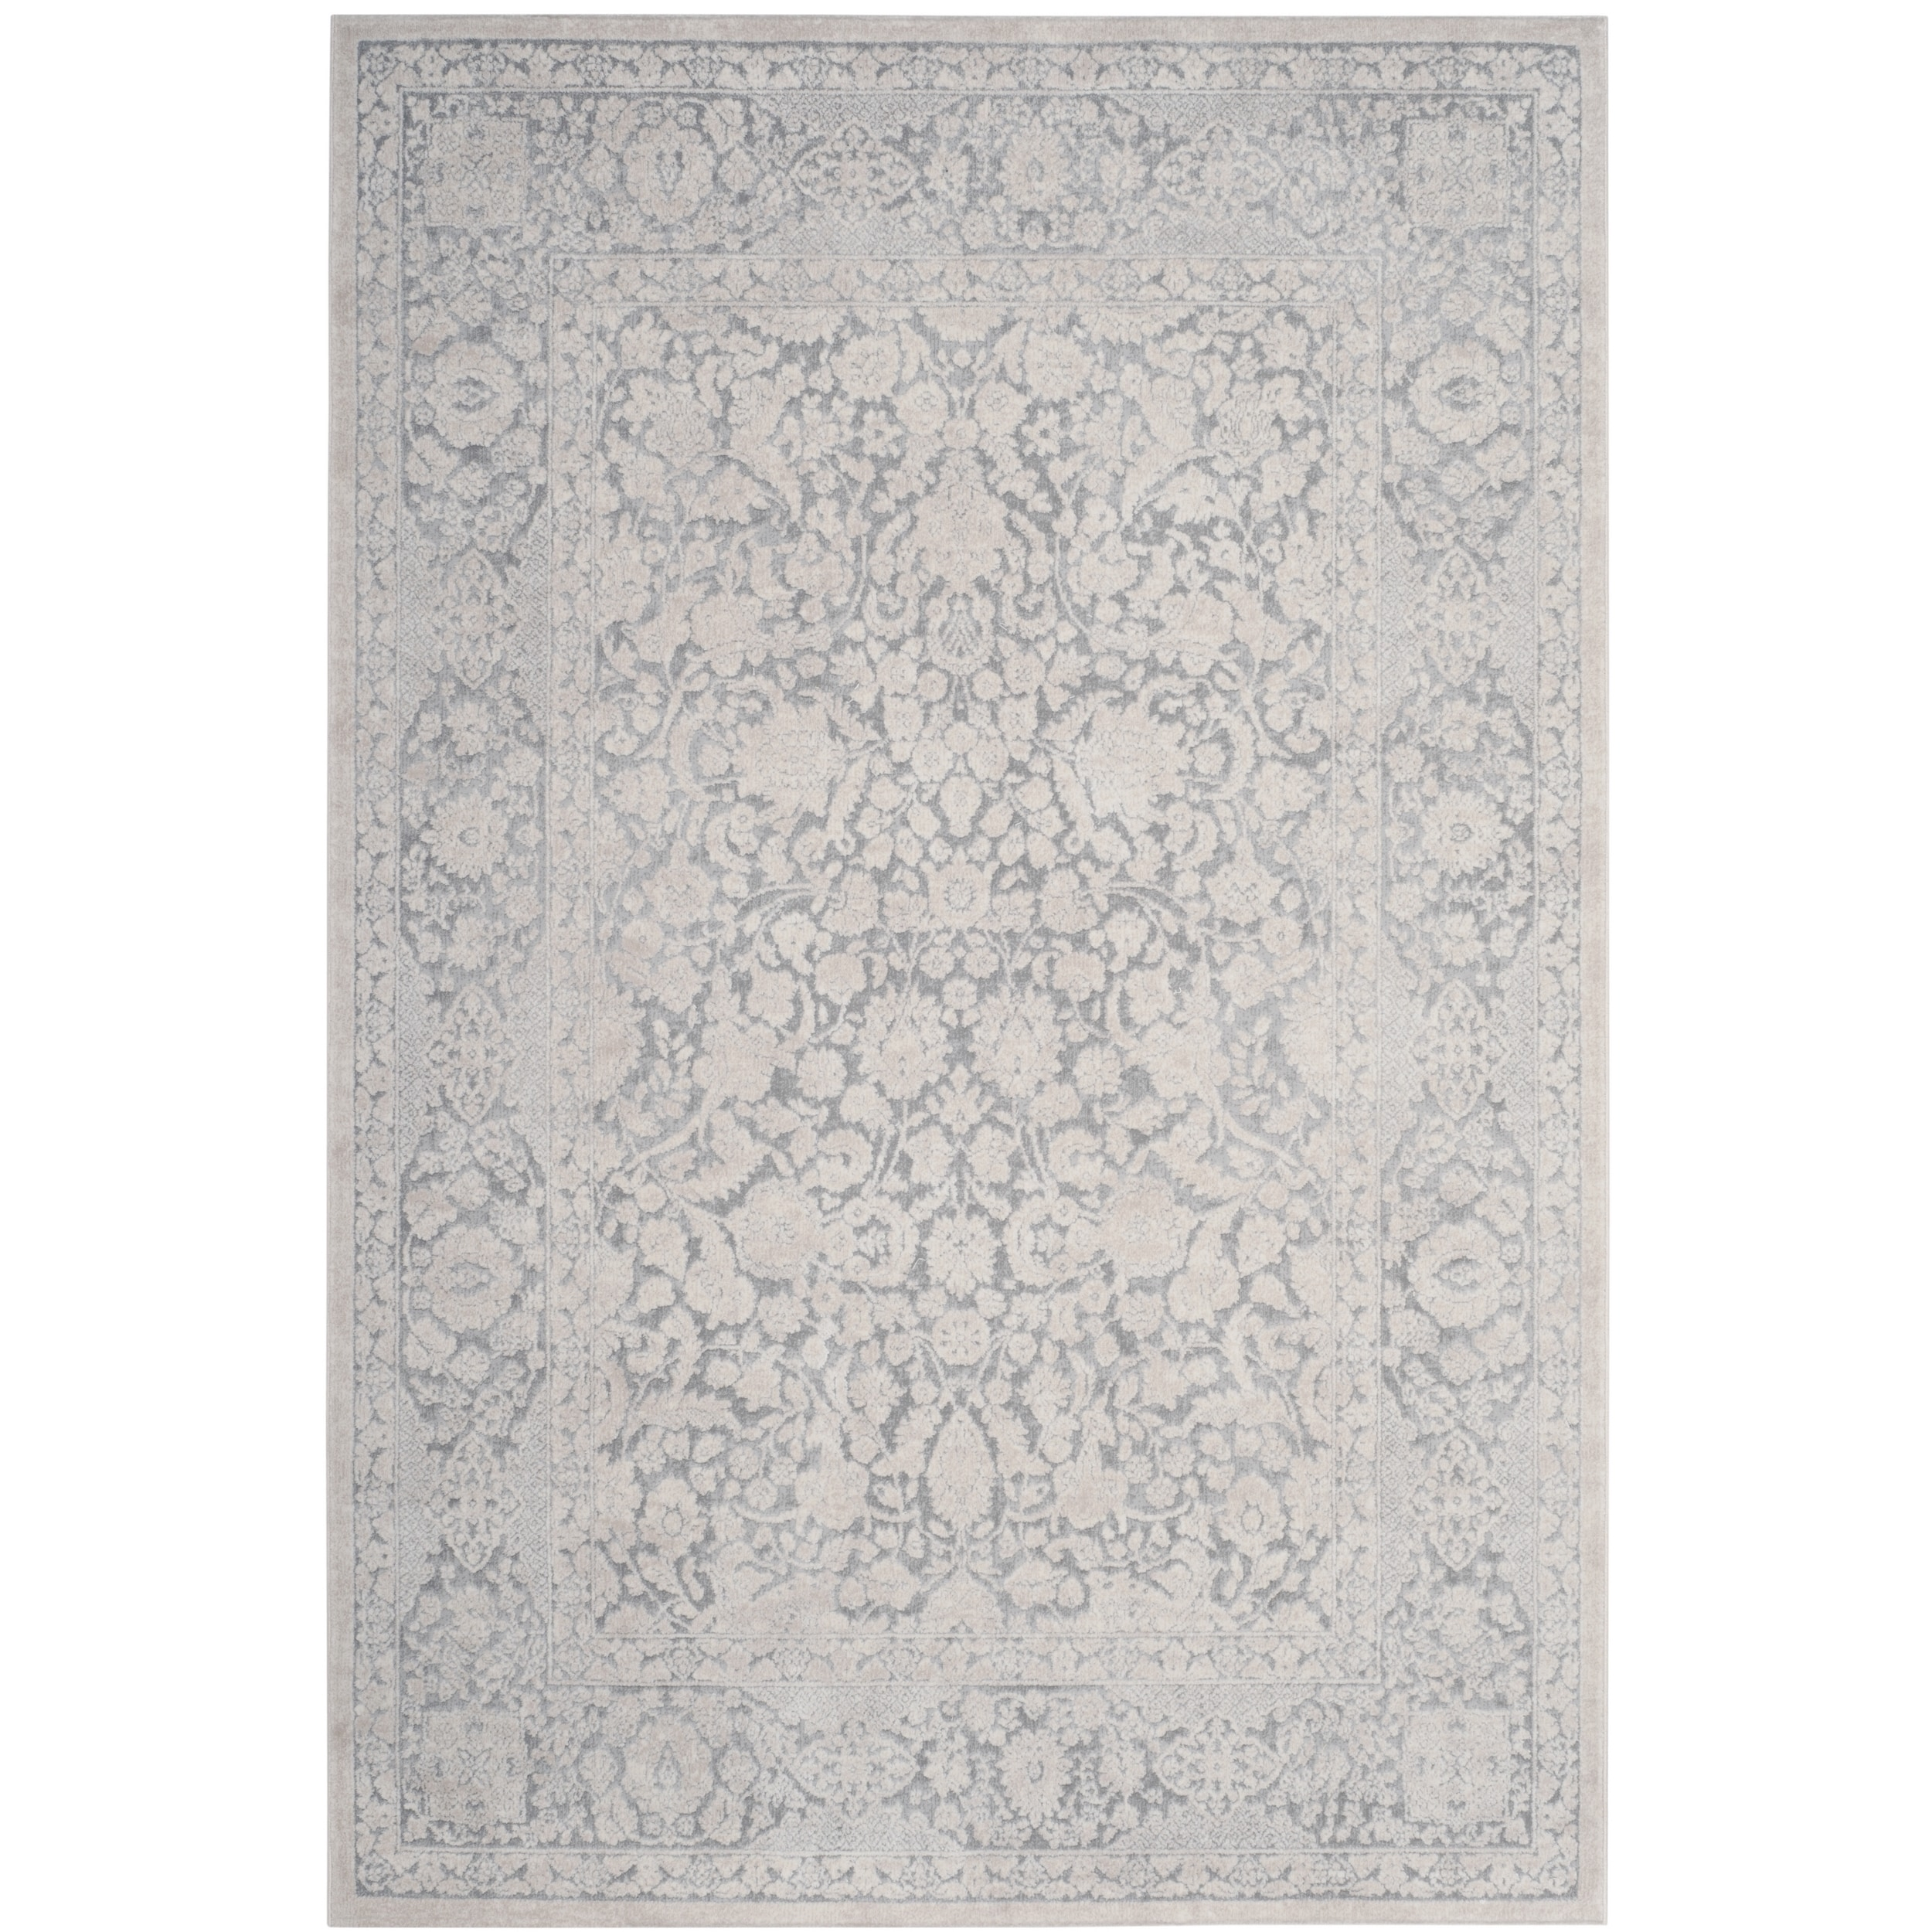 ivory yellow and rugs room gray grey magnificent rug area charming artic cream twilight living